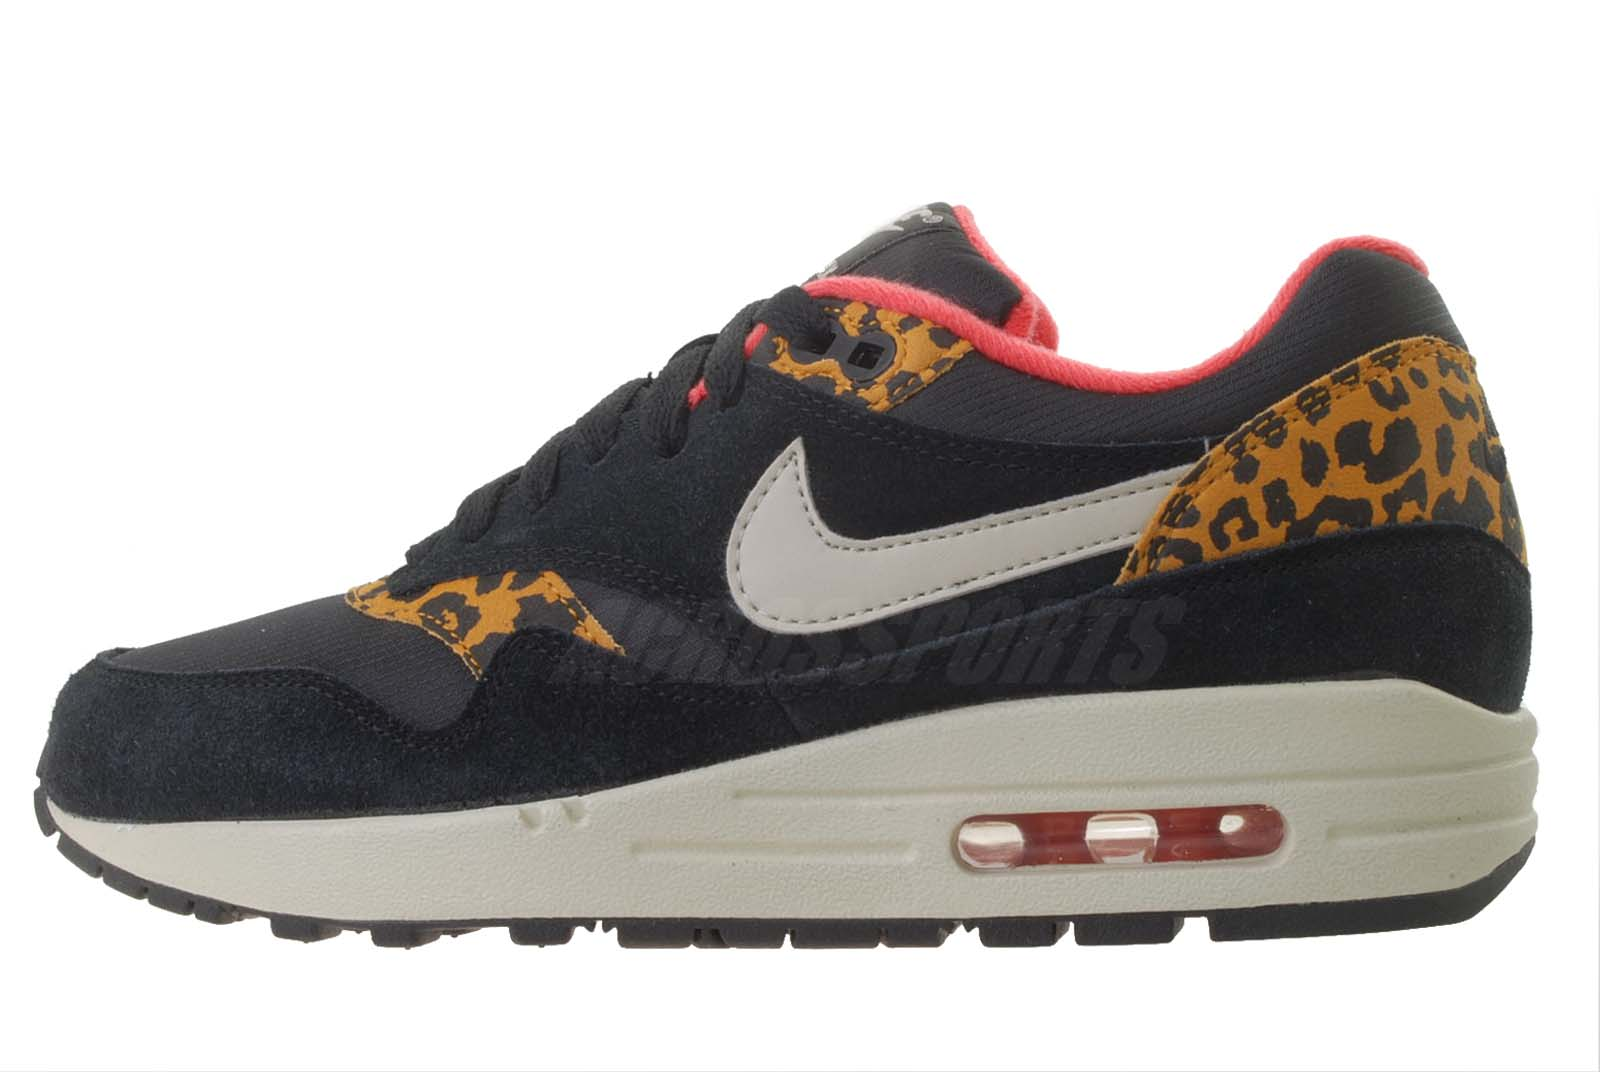 Womens Nike Air Max Animal Print   The Centre for Contemporary History a1924dfaeb